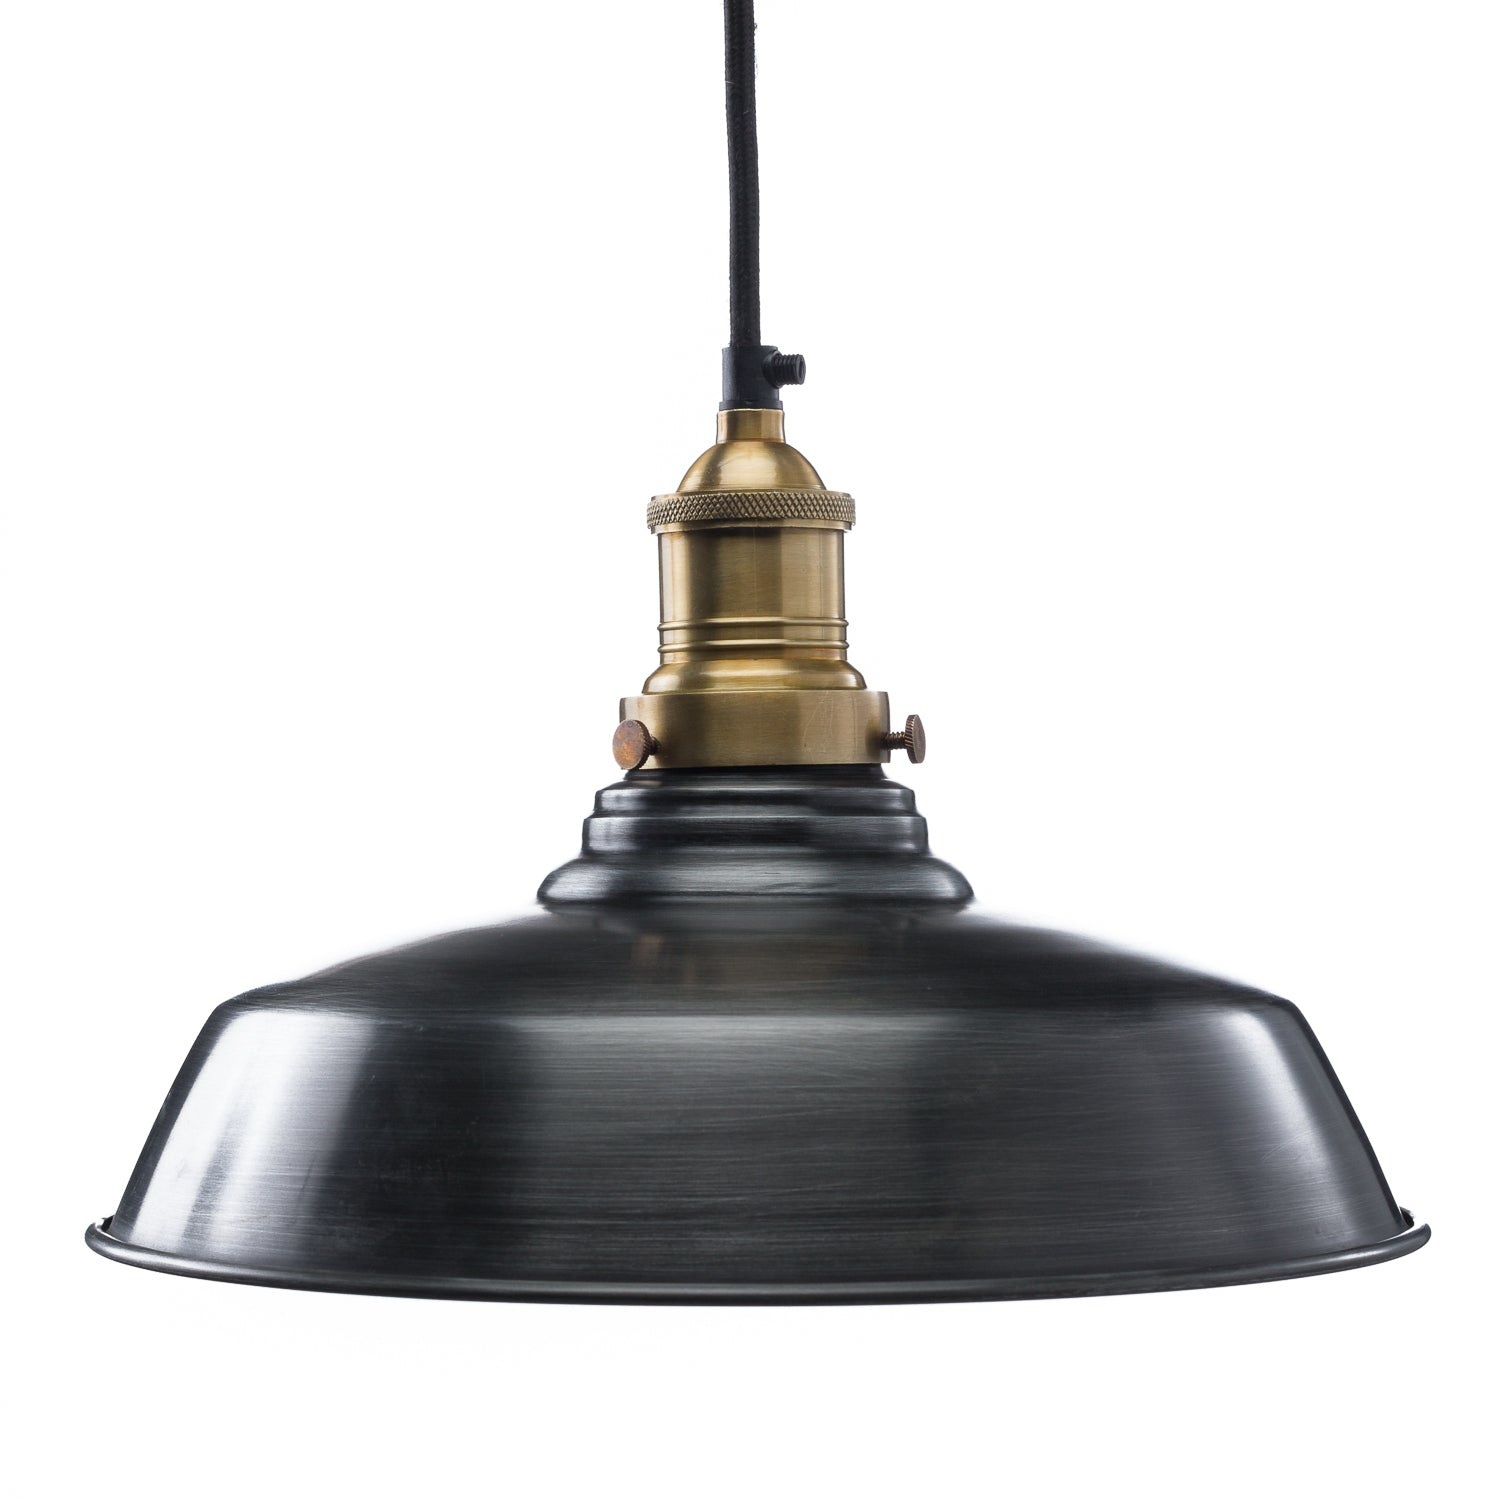 Classic Dome Shade - Steel